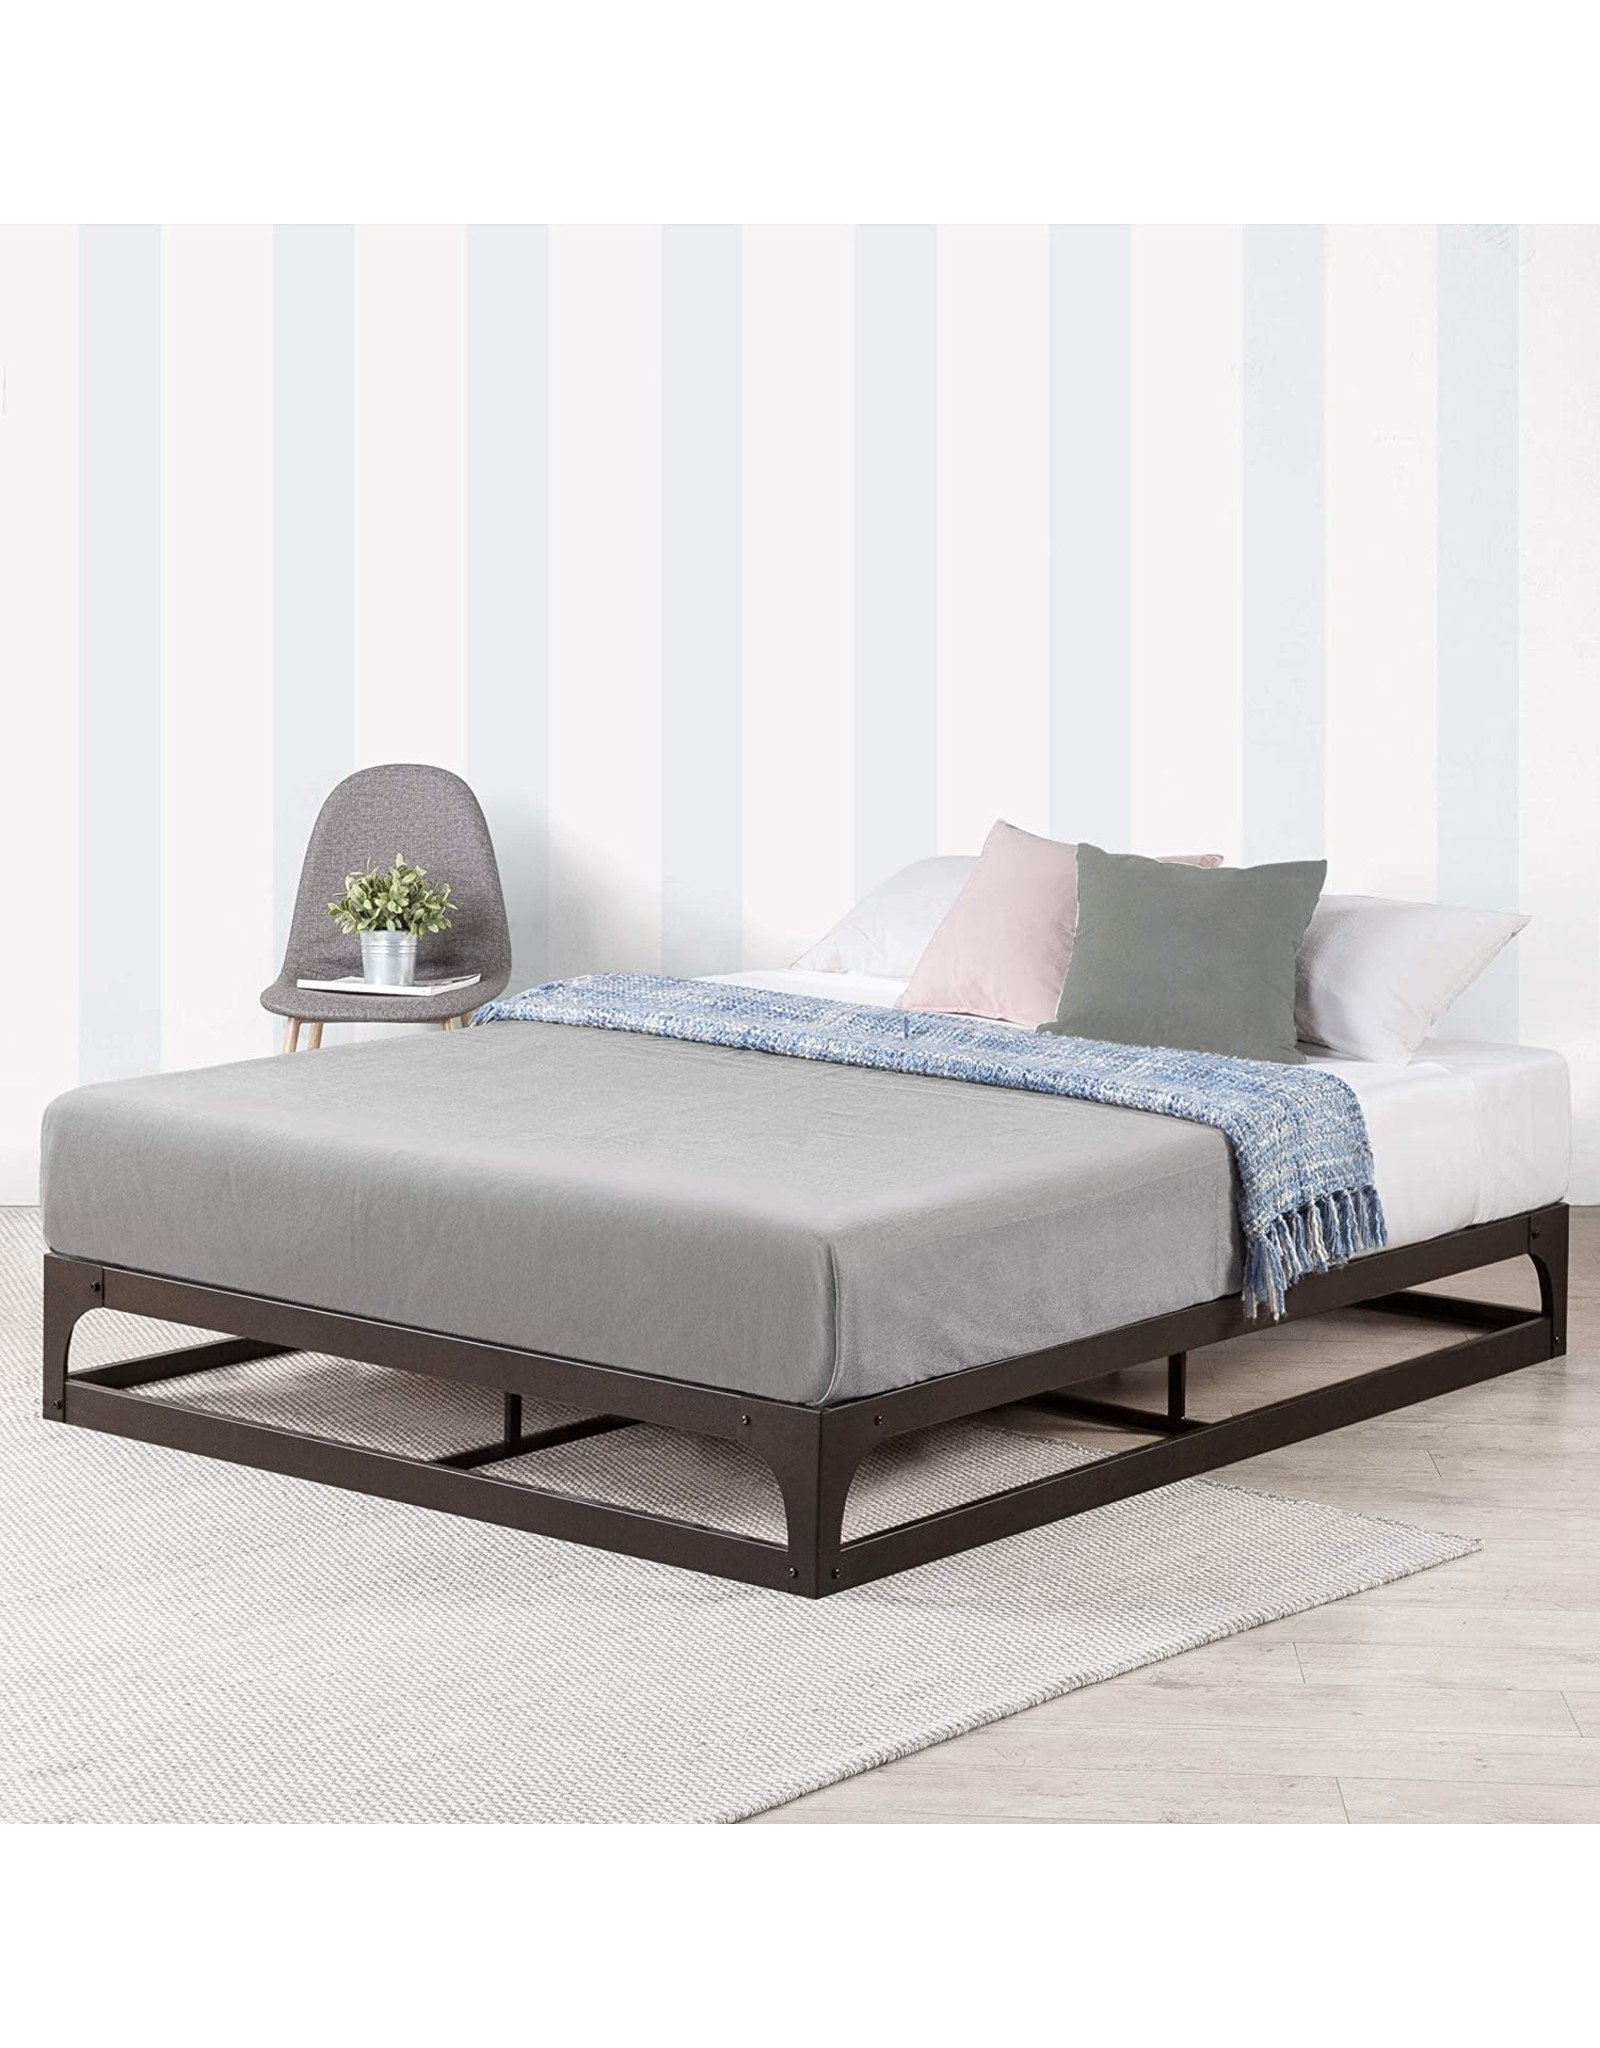 Mellow Mellow 9 Inch Metal Platform Bed Frame with Heavy Duty Steel Slat Mattress Foundation (No Box Spring Needed), Queen, Black